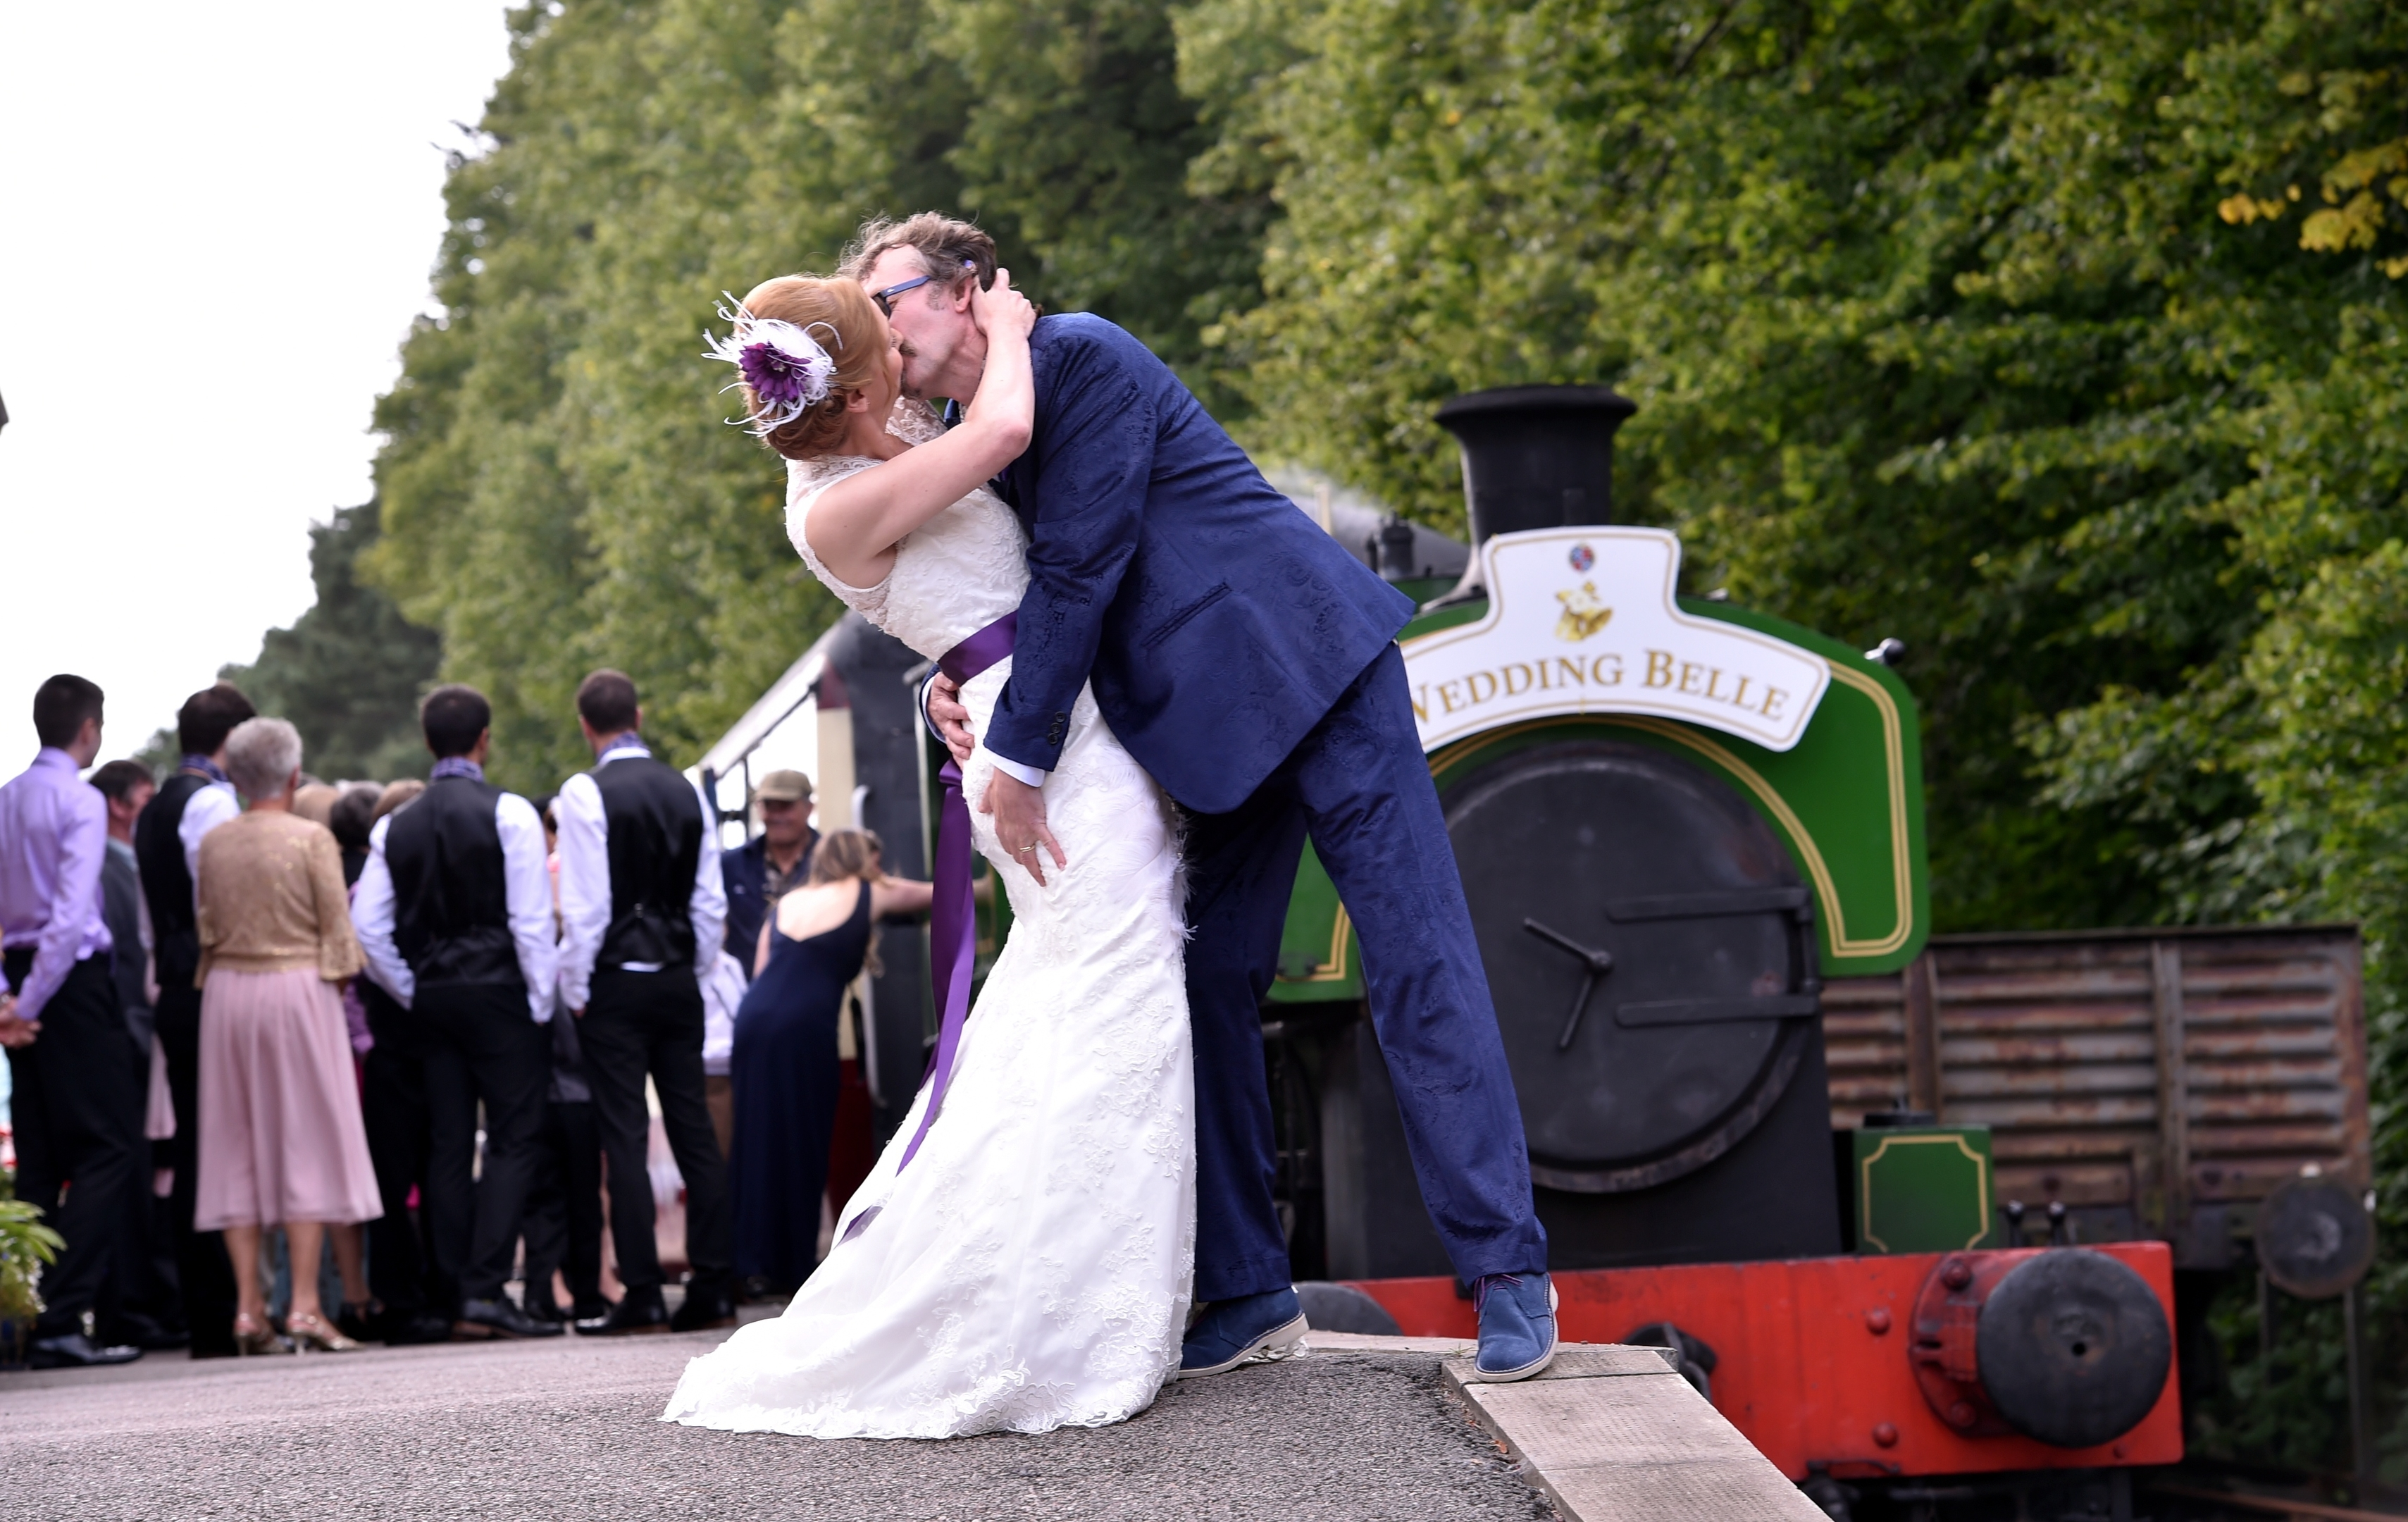 Milton of Crathes Station - the wedding of Shaun Allan and Carol McLaughlin had taken place on the moving carriage.